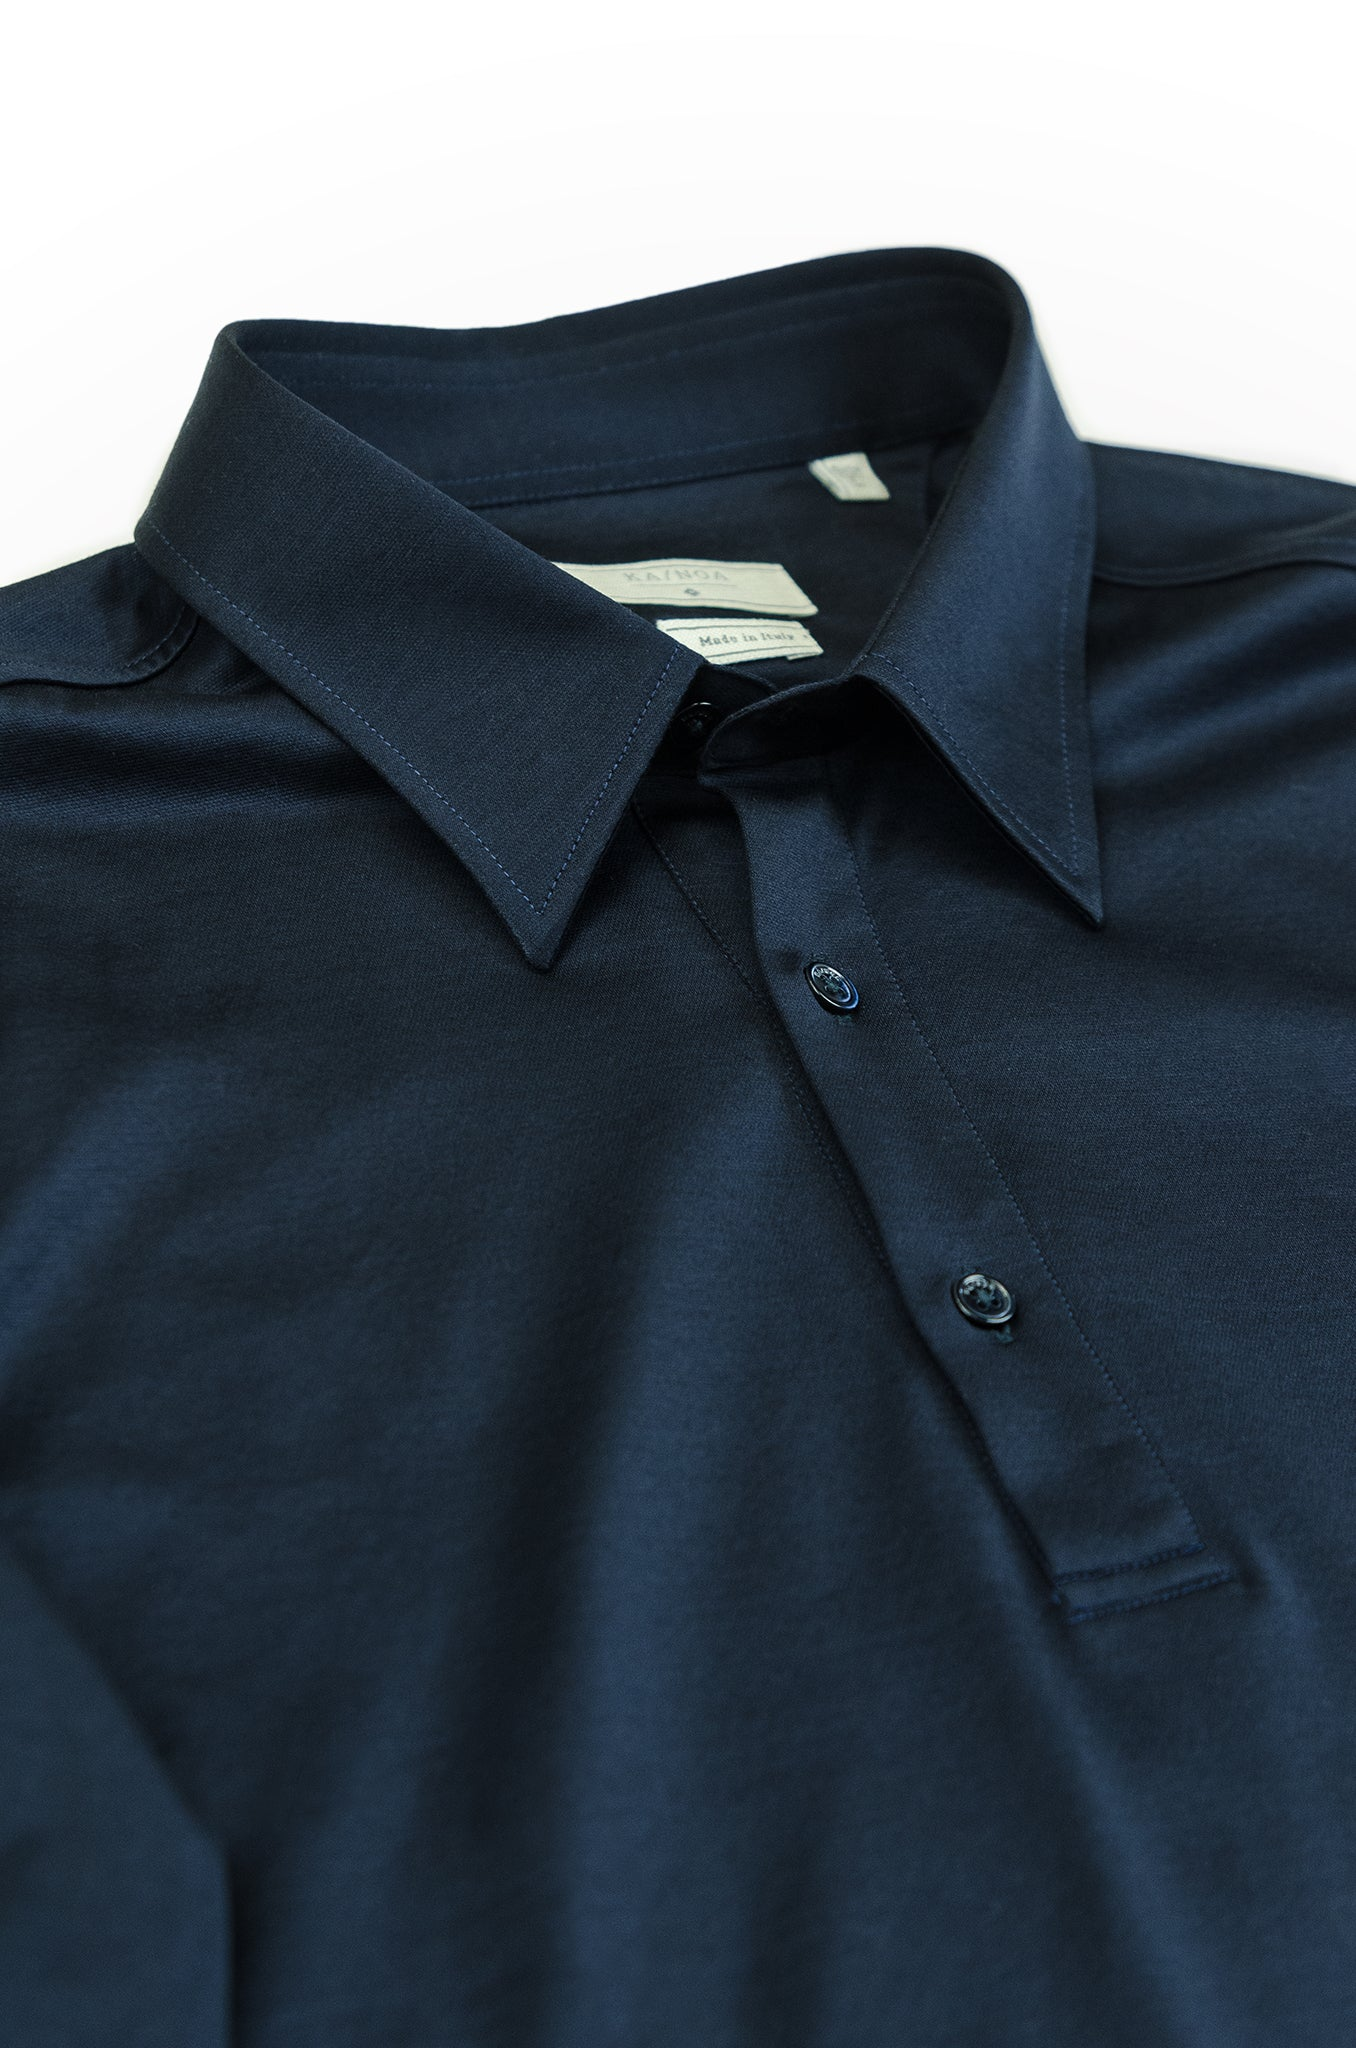 Jean long-sleeved polo in fine jersey (dark blue)